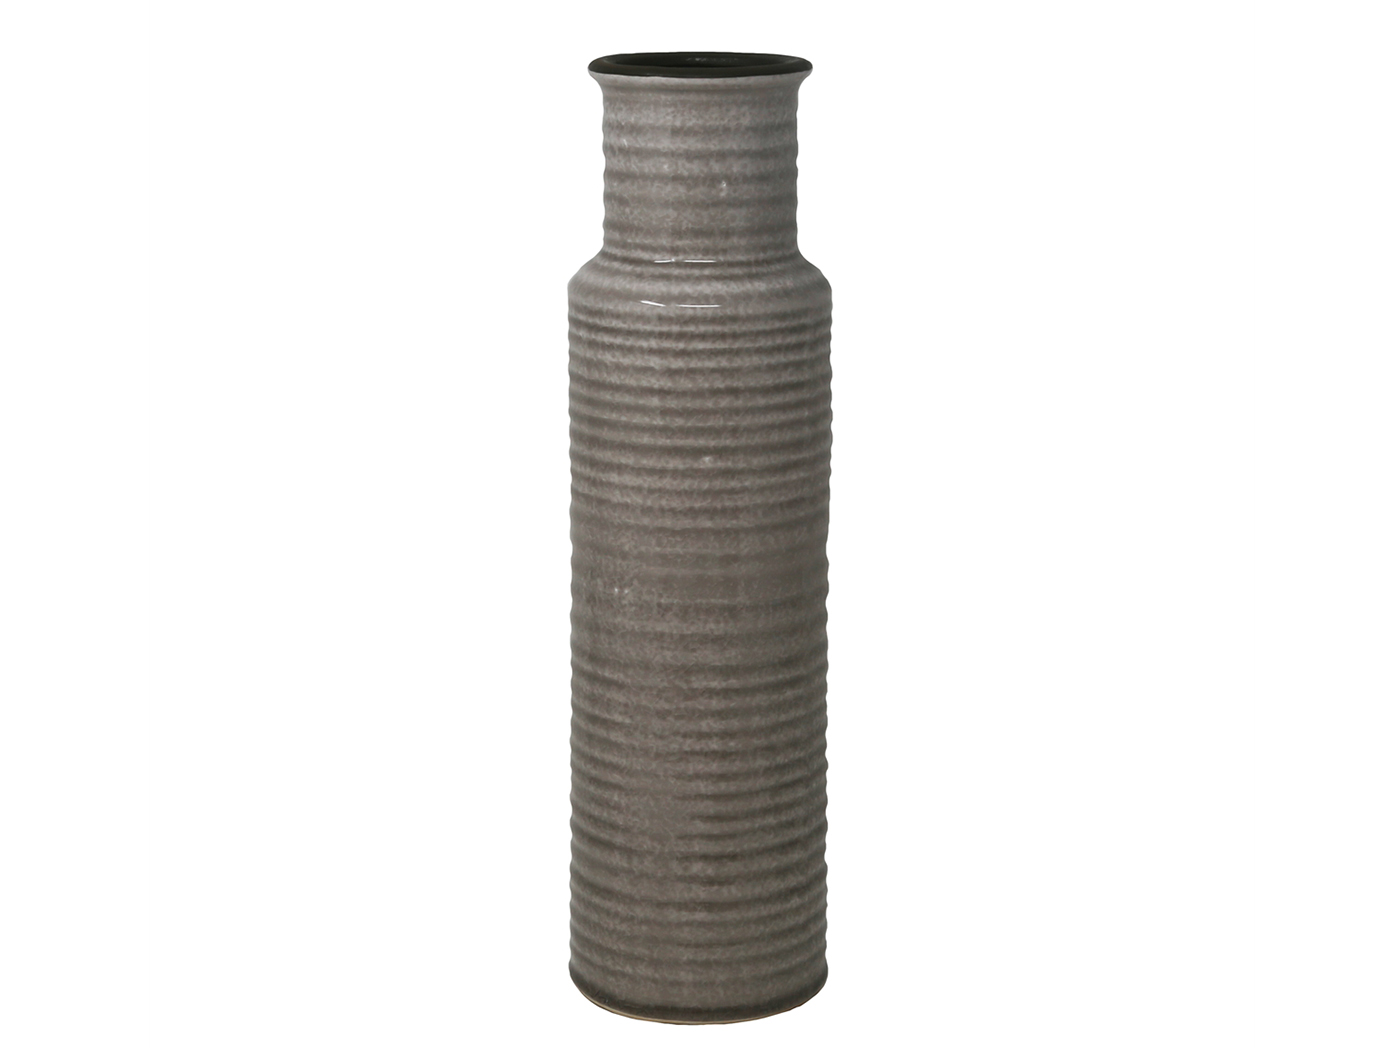 "Large Beige Ribbed Ceramic Vase 4.25x15.5""H"